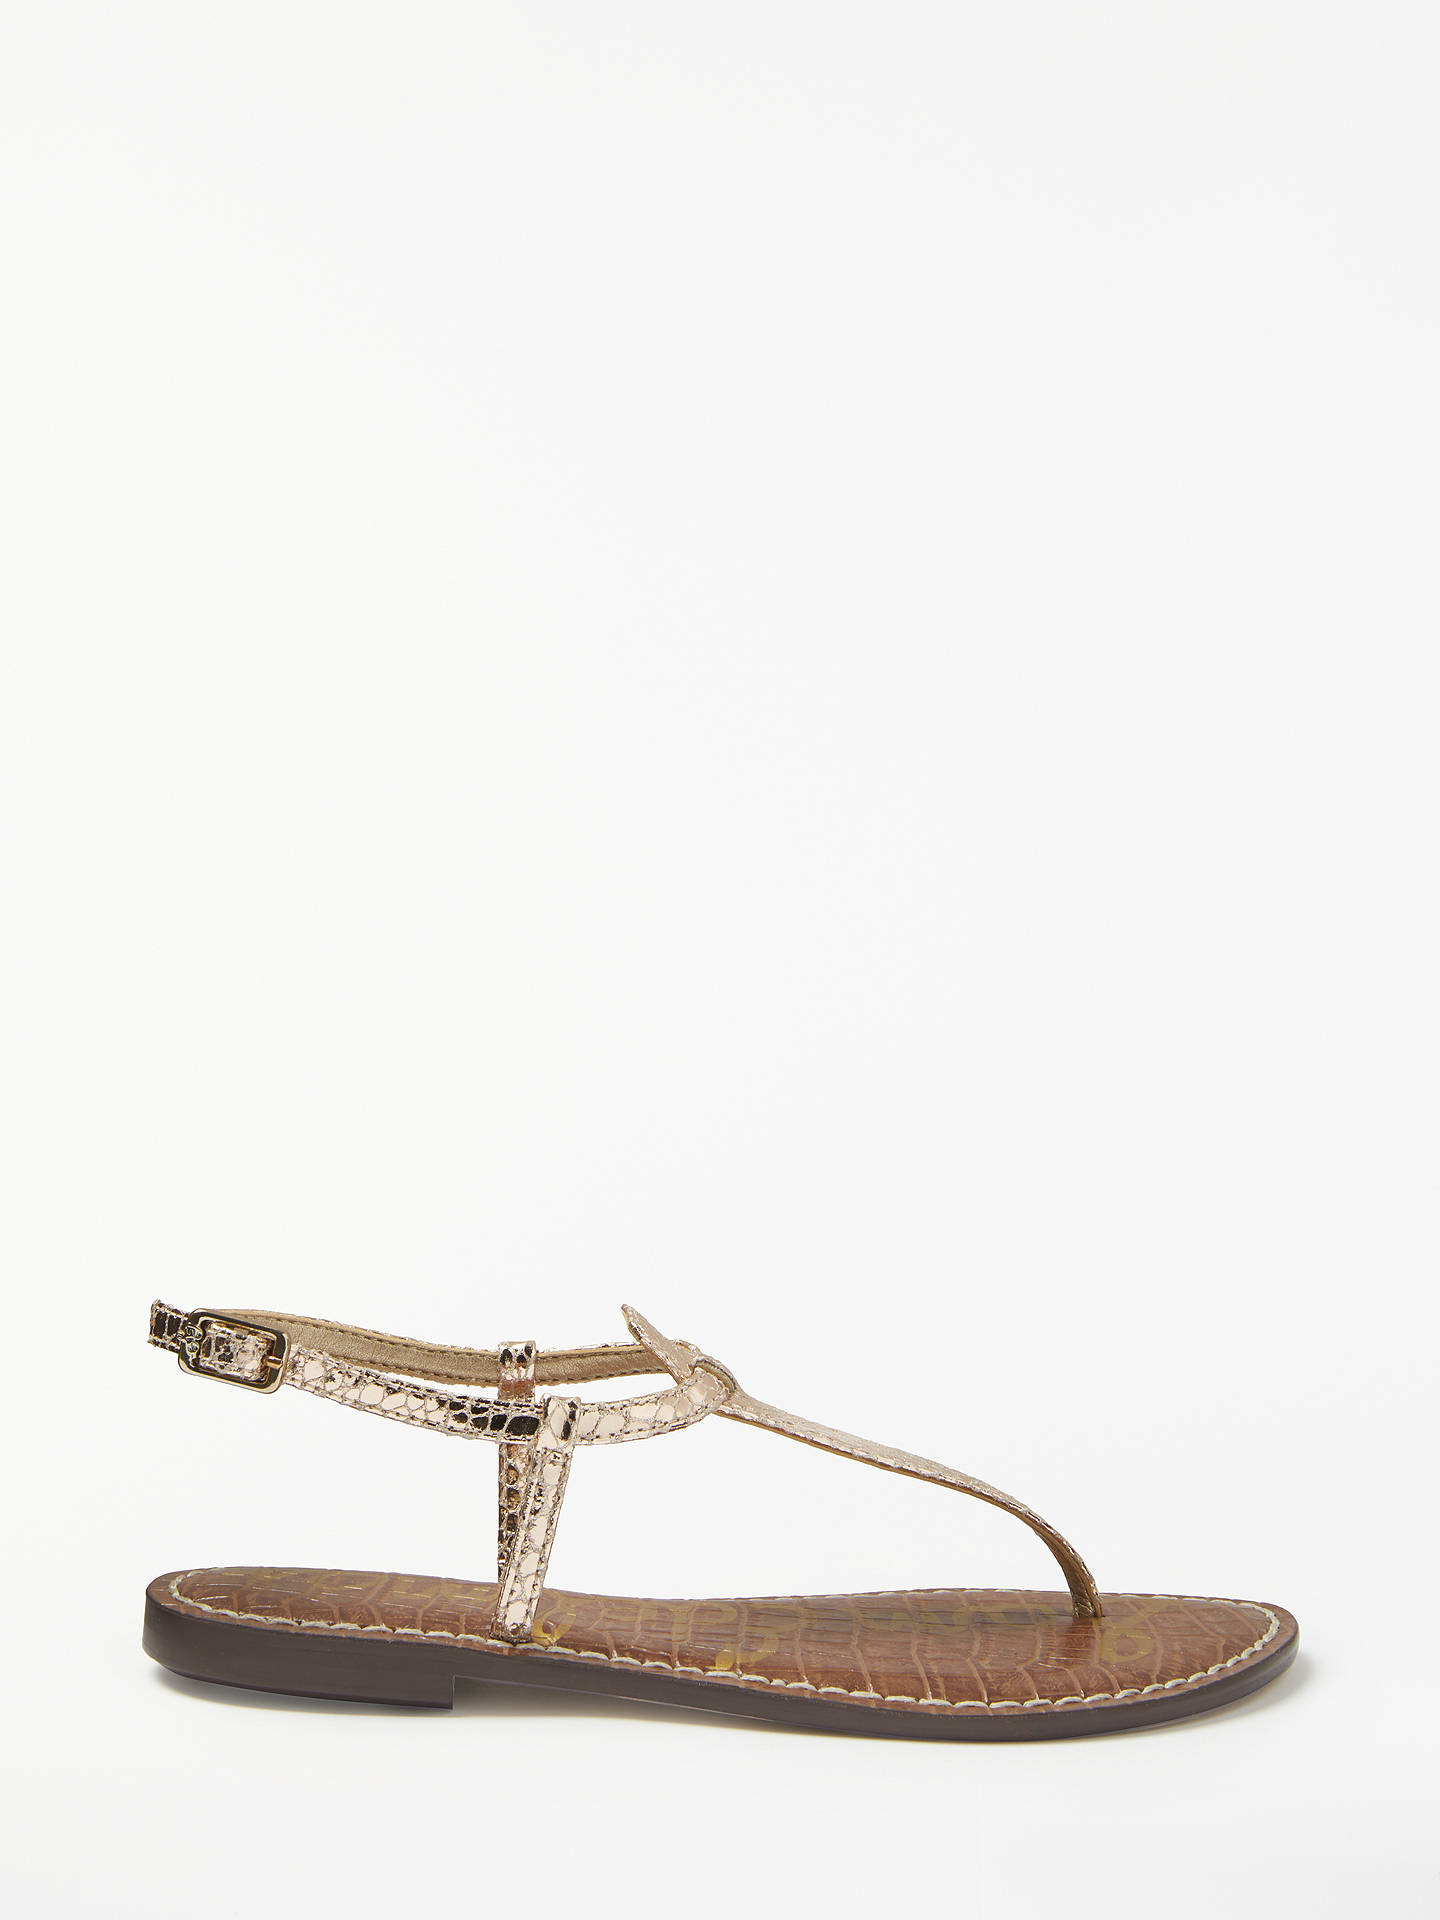 0c99783688533d Buy Sam Edelman Gigi Toe Post Sandals